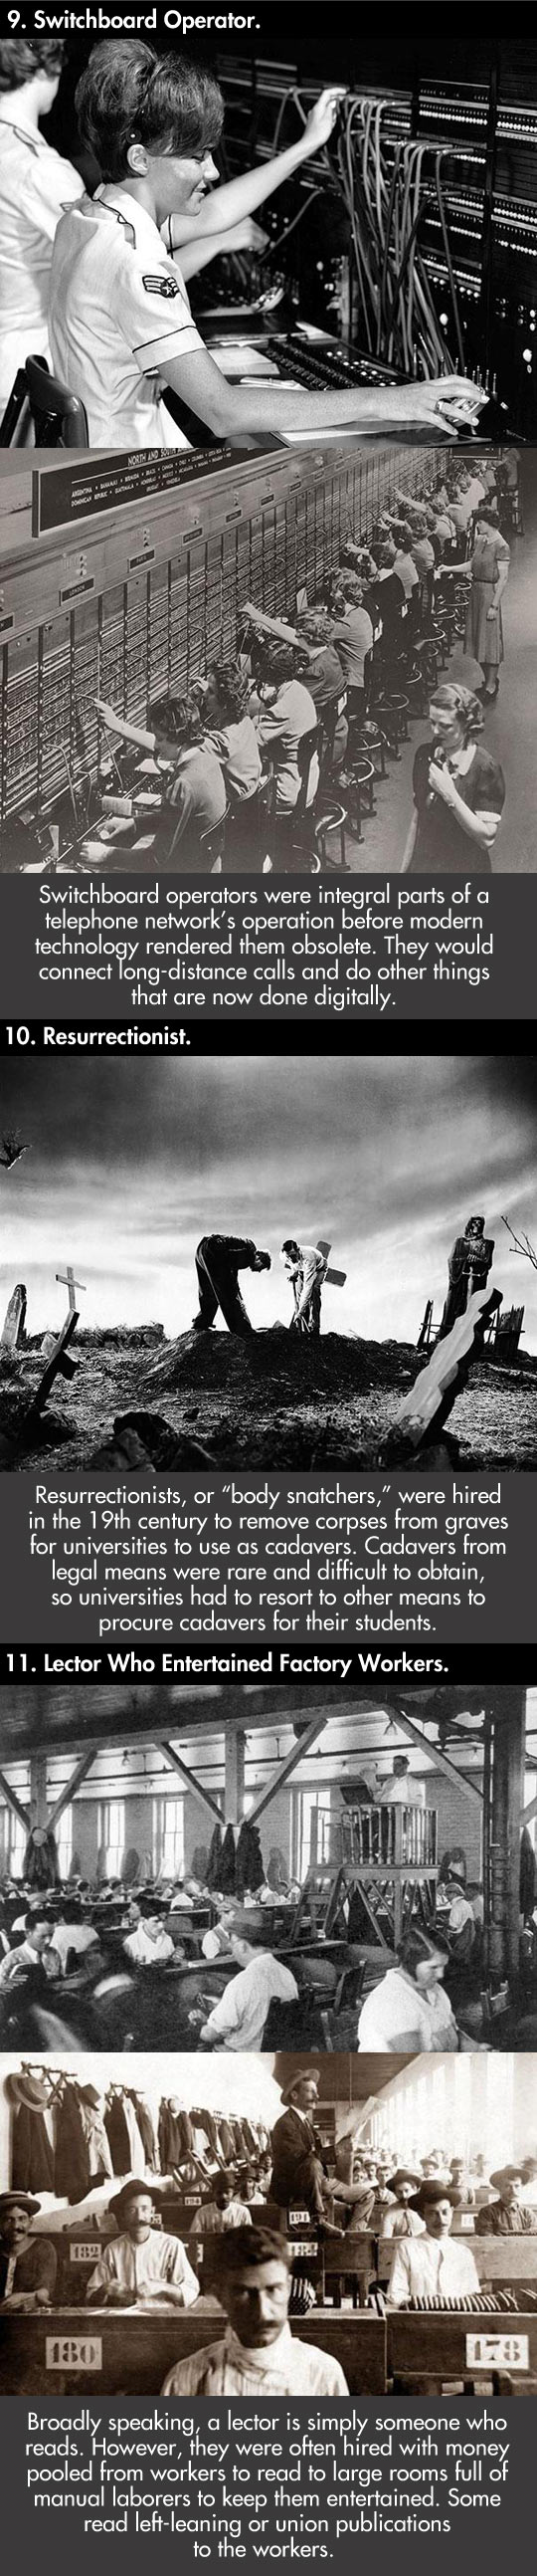 cool-jobs-dont-exist-today-resurrectionist